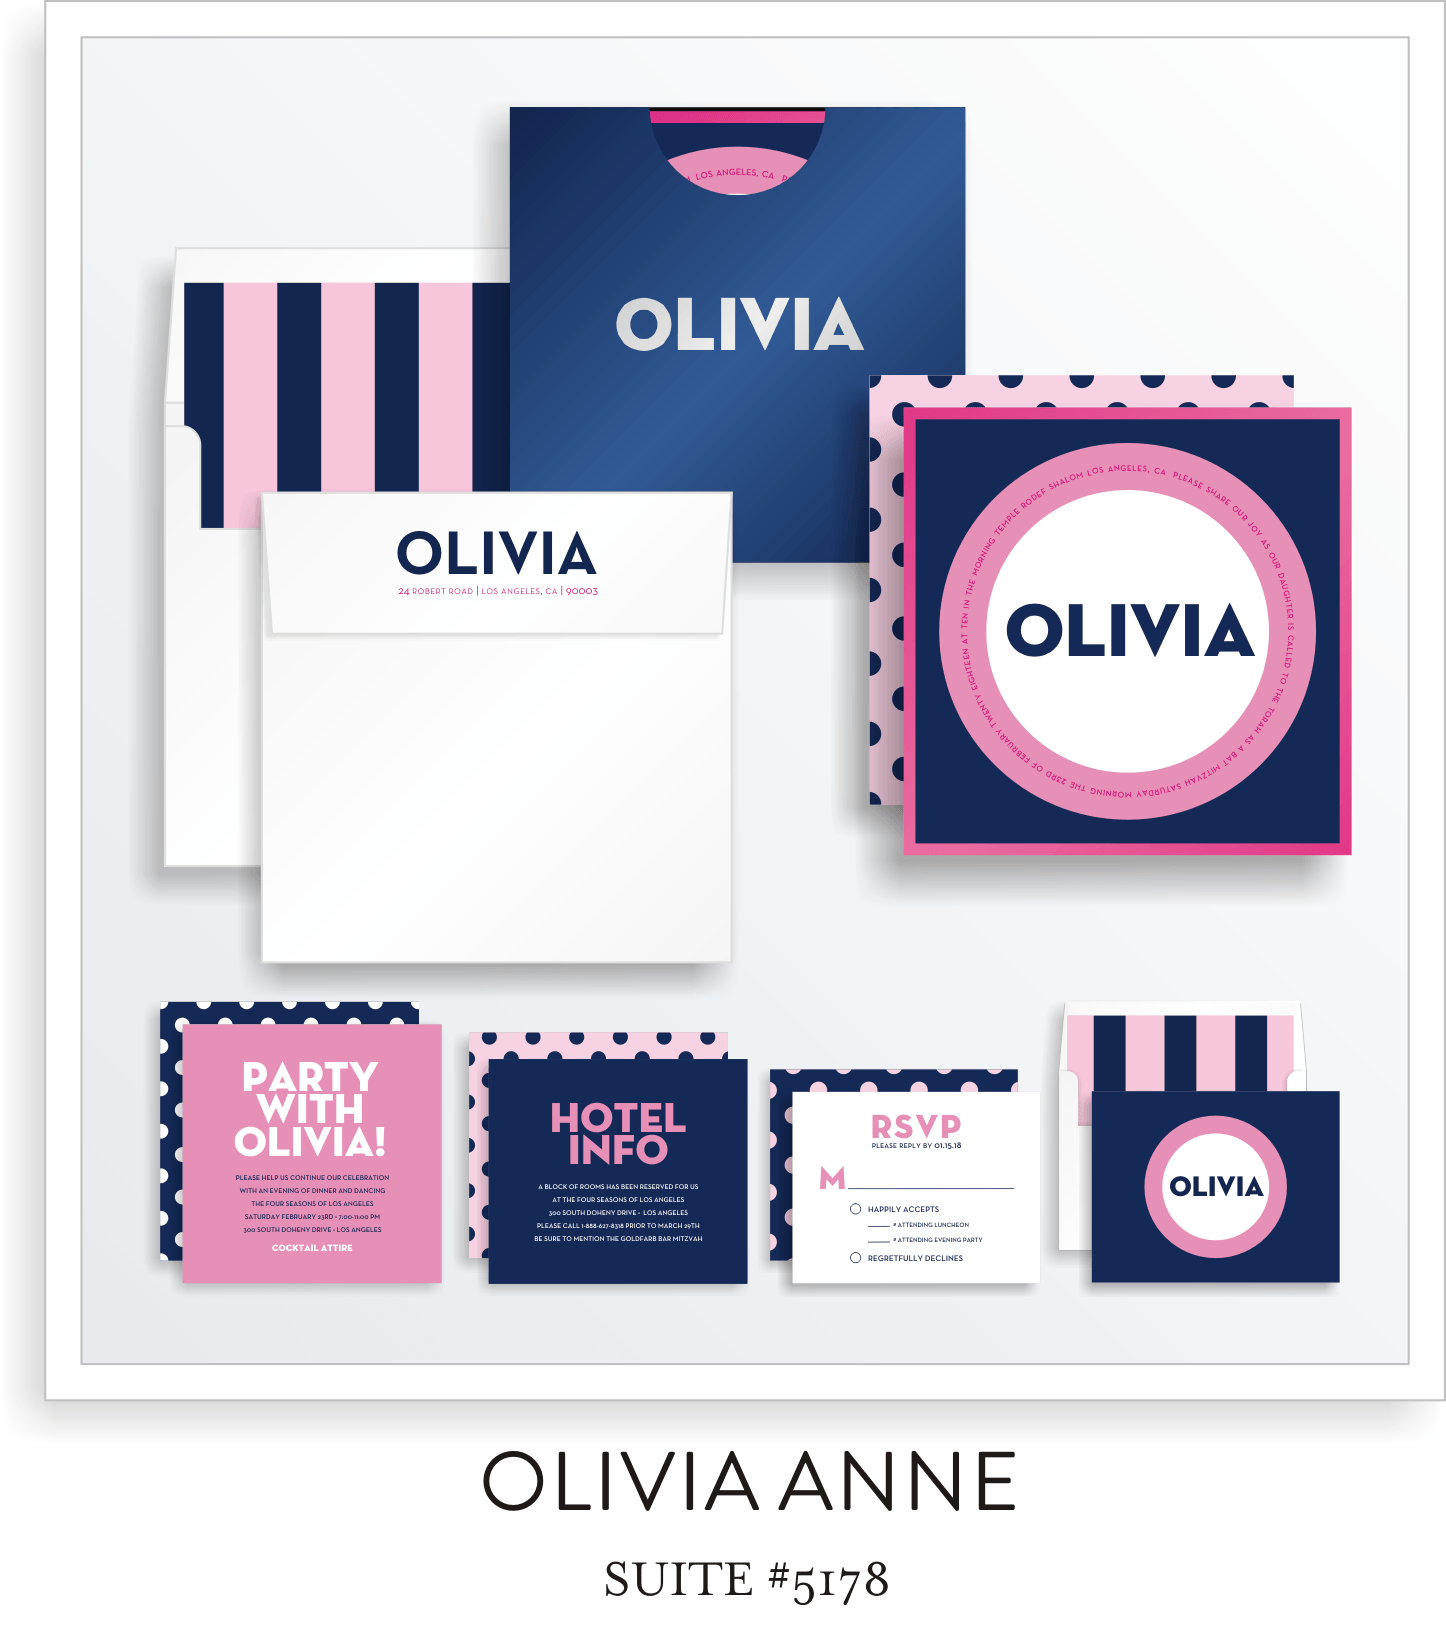 Copy of Bat Mitzvah Invitation Suite 5178 - Olivia Anne